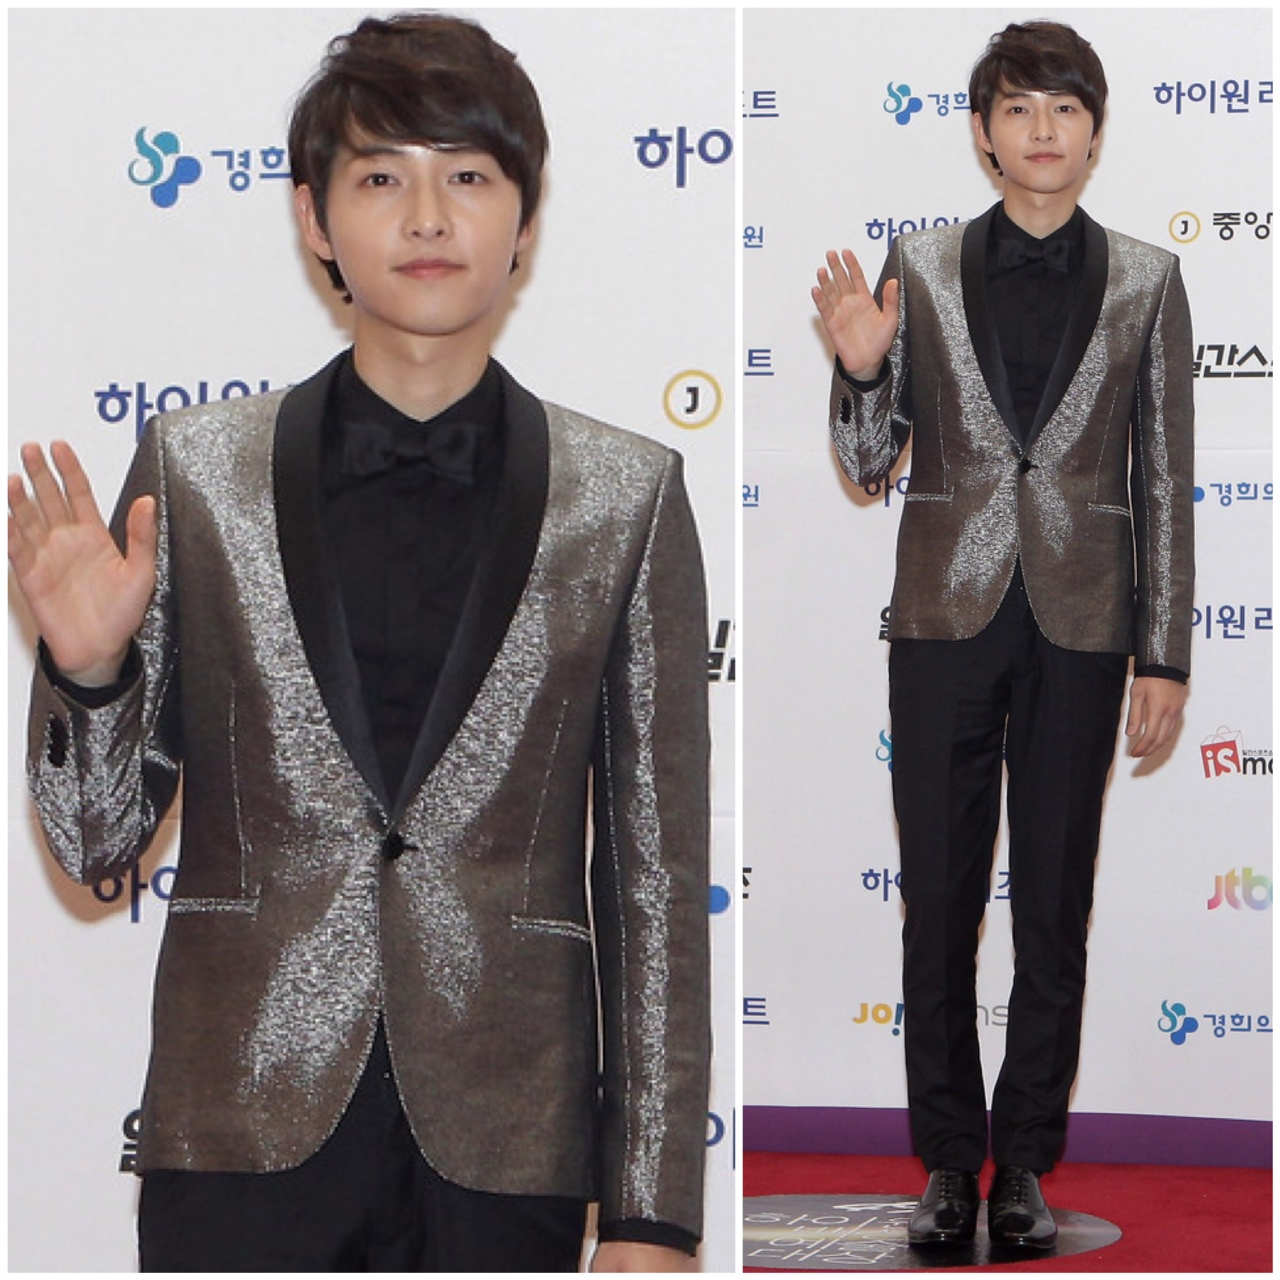 00O00 Menswear Blog Song Joong-Ki [송중기] in Saint Laurent - 49th Paeksang Arts Awards May 2013